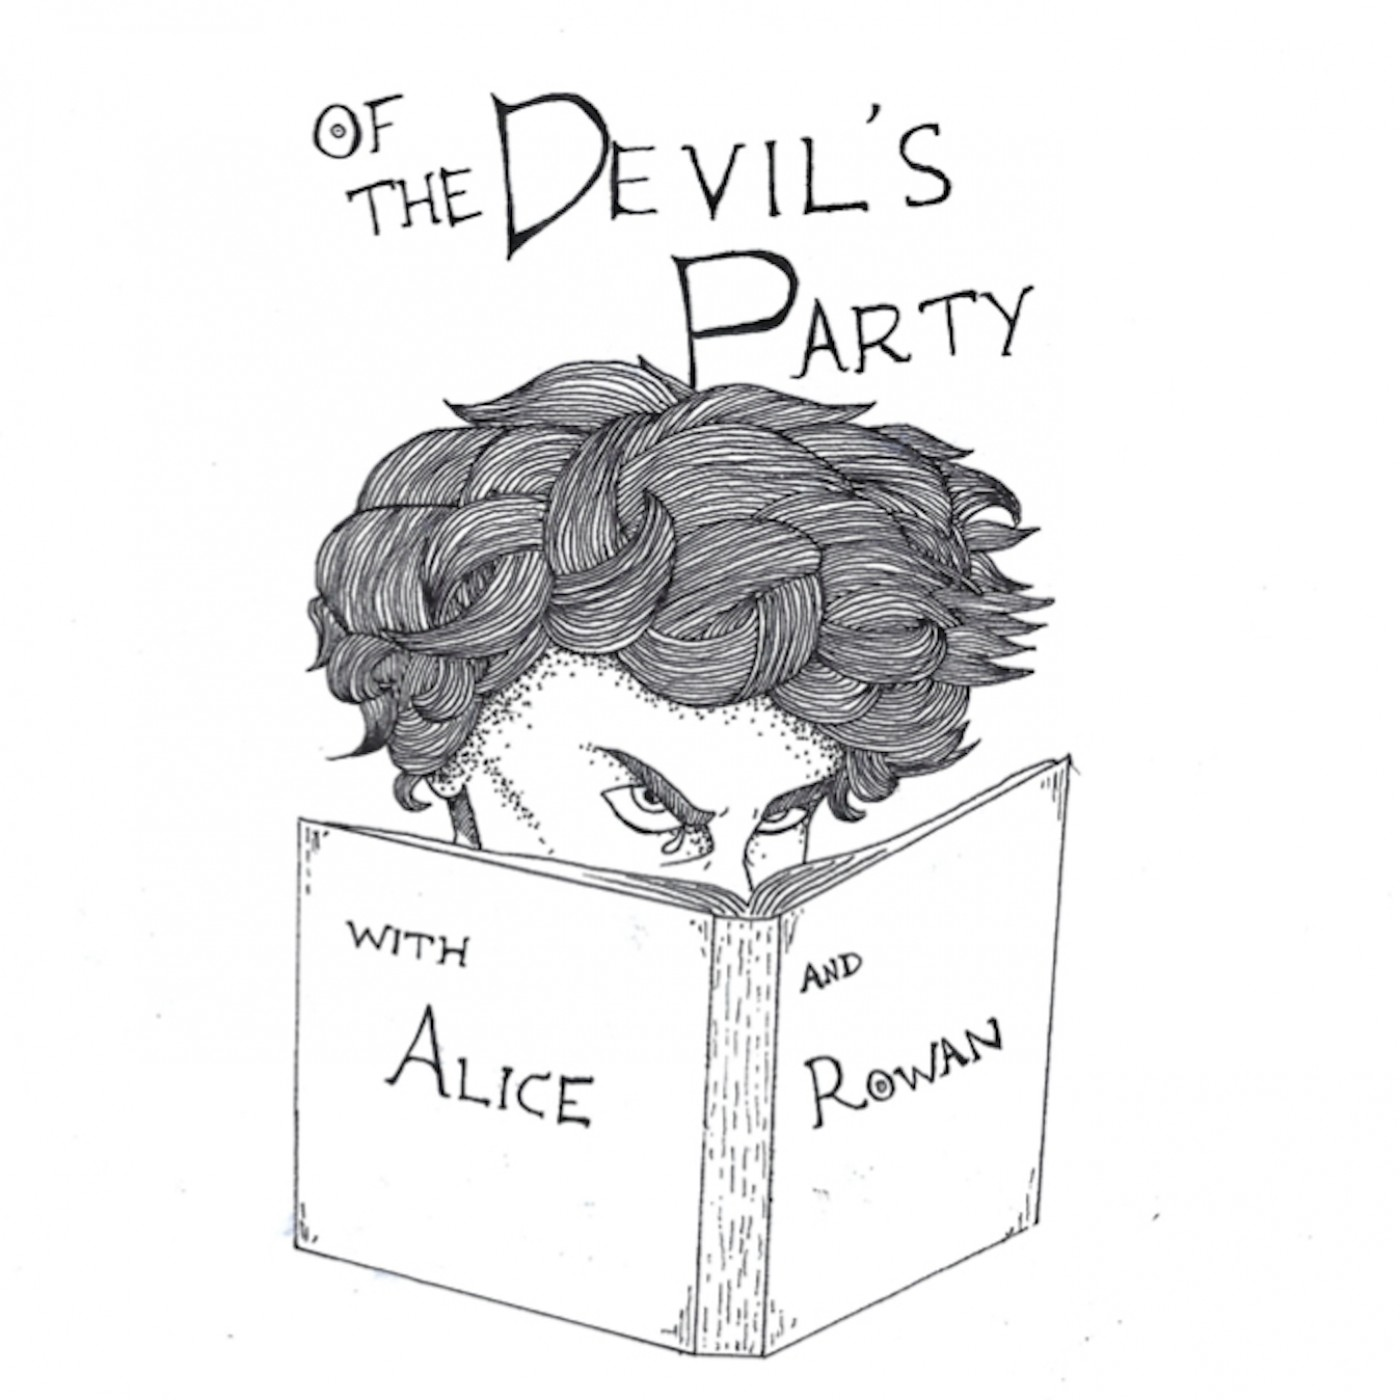 Of the Devil's Party